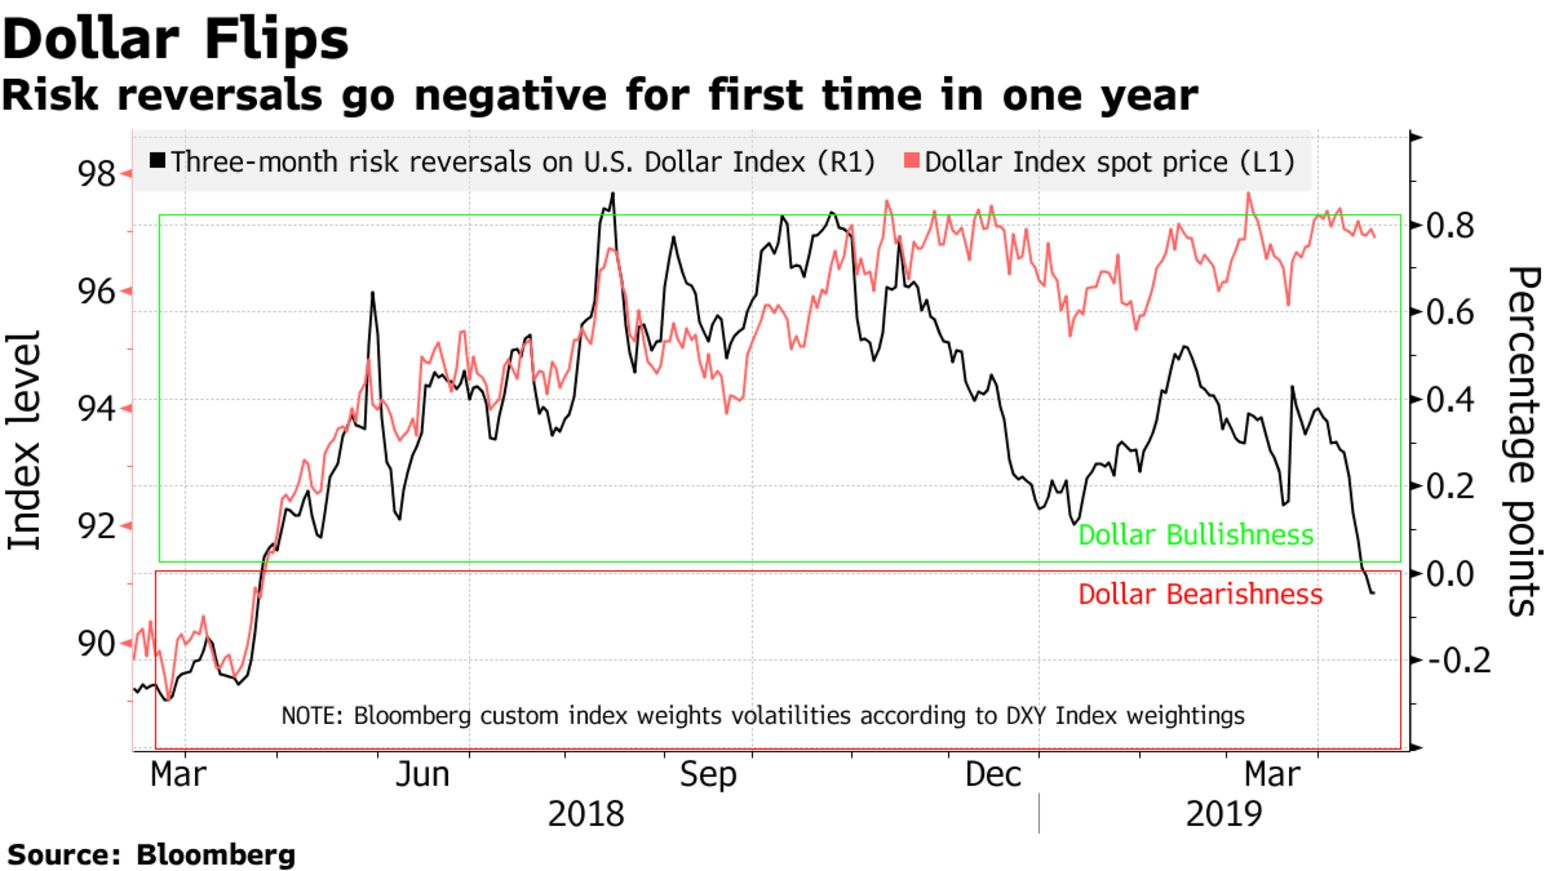 Risk reversals go negative for first time in one year